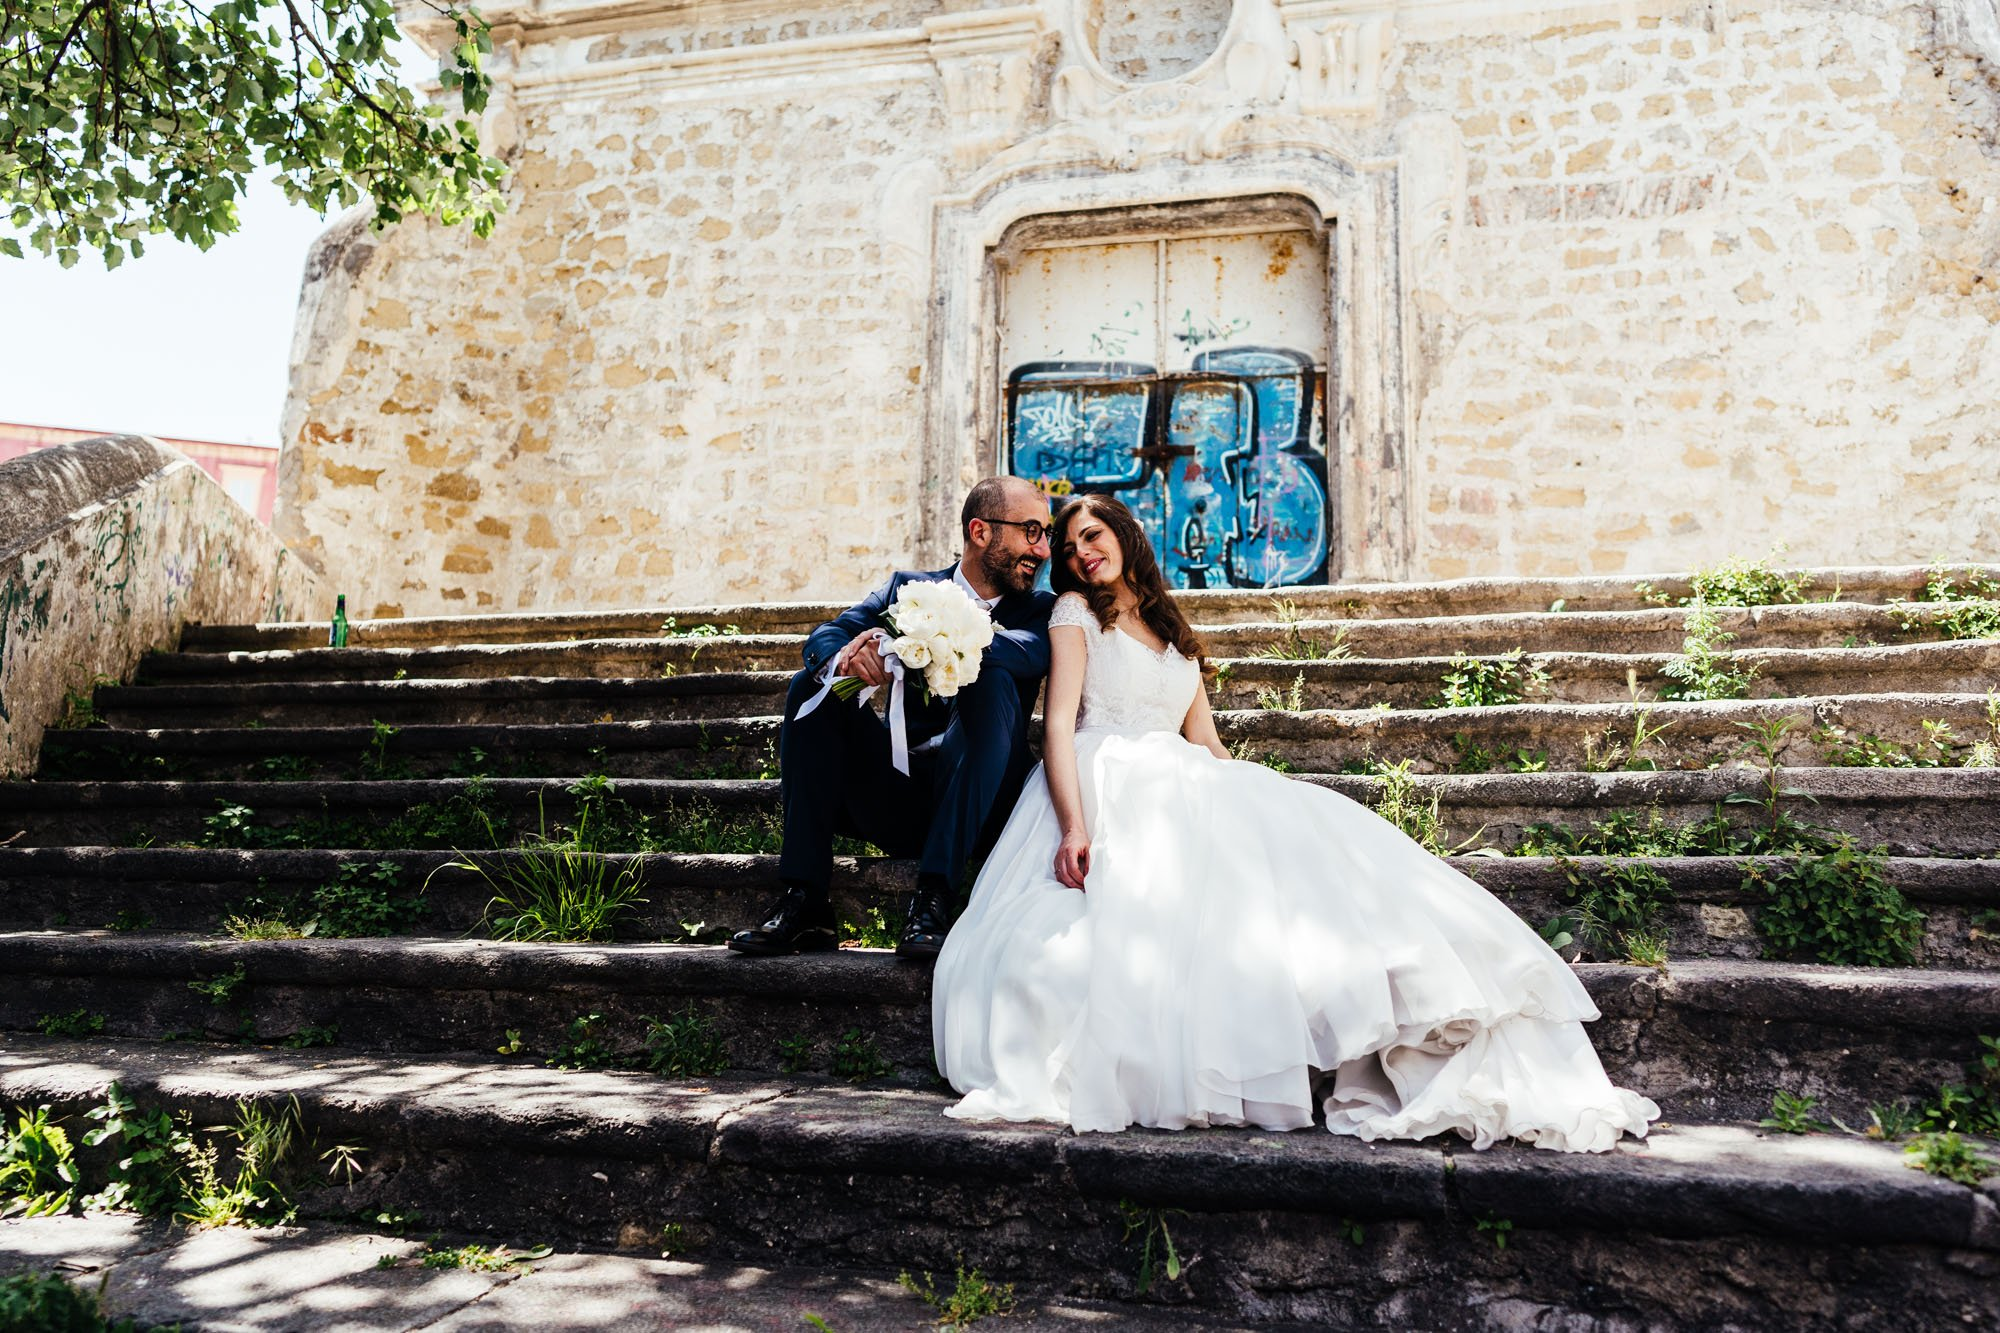 wedding-in-italy-mary-mimmo-48